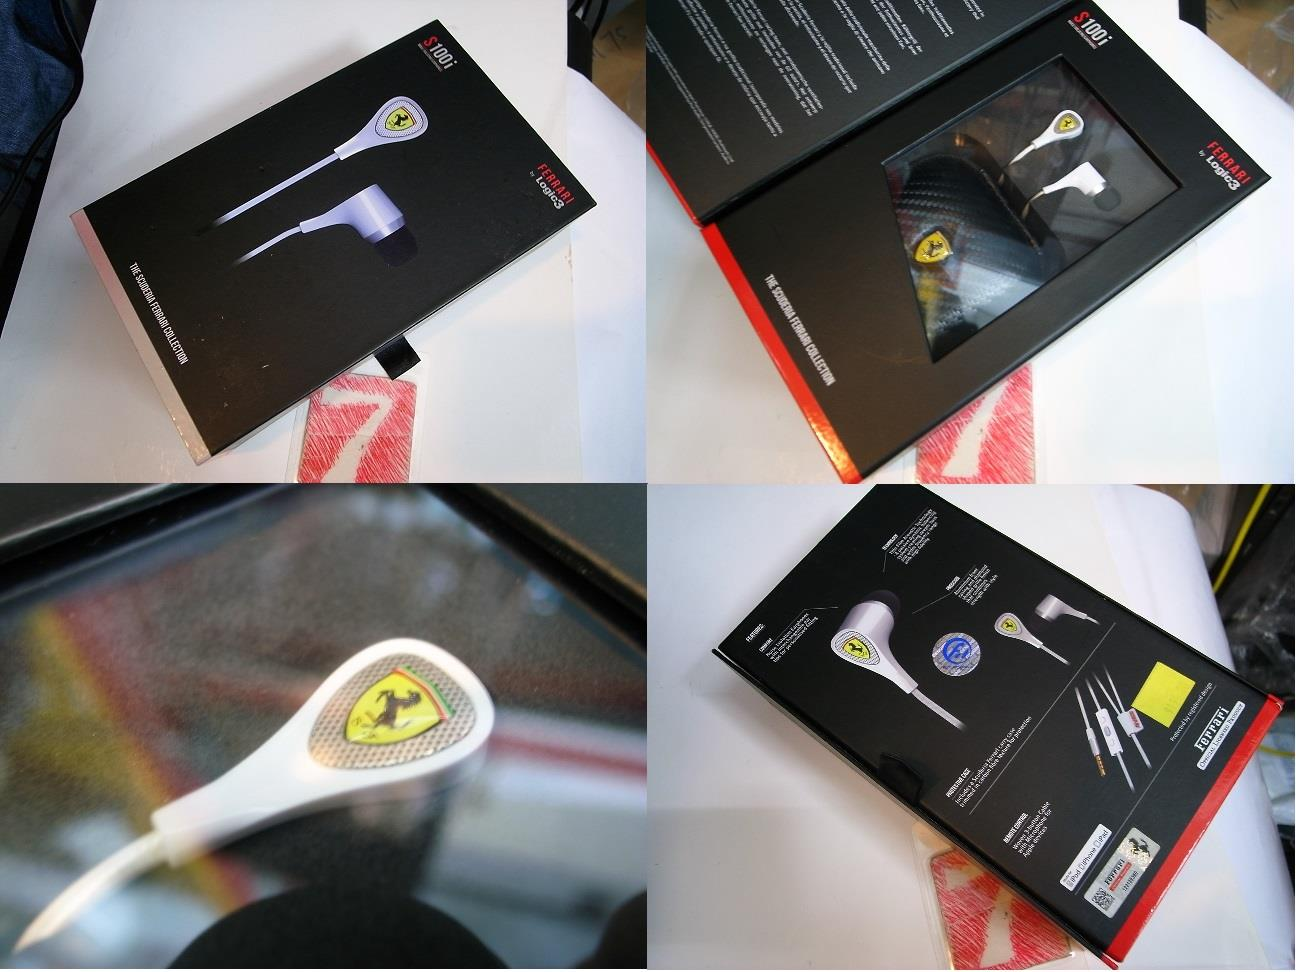 FERRARI S100I  Earphones BY LOGIC3 Rm320